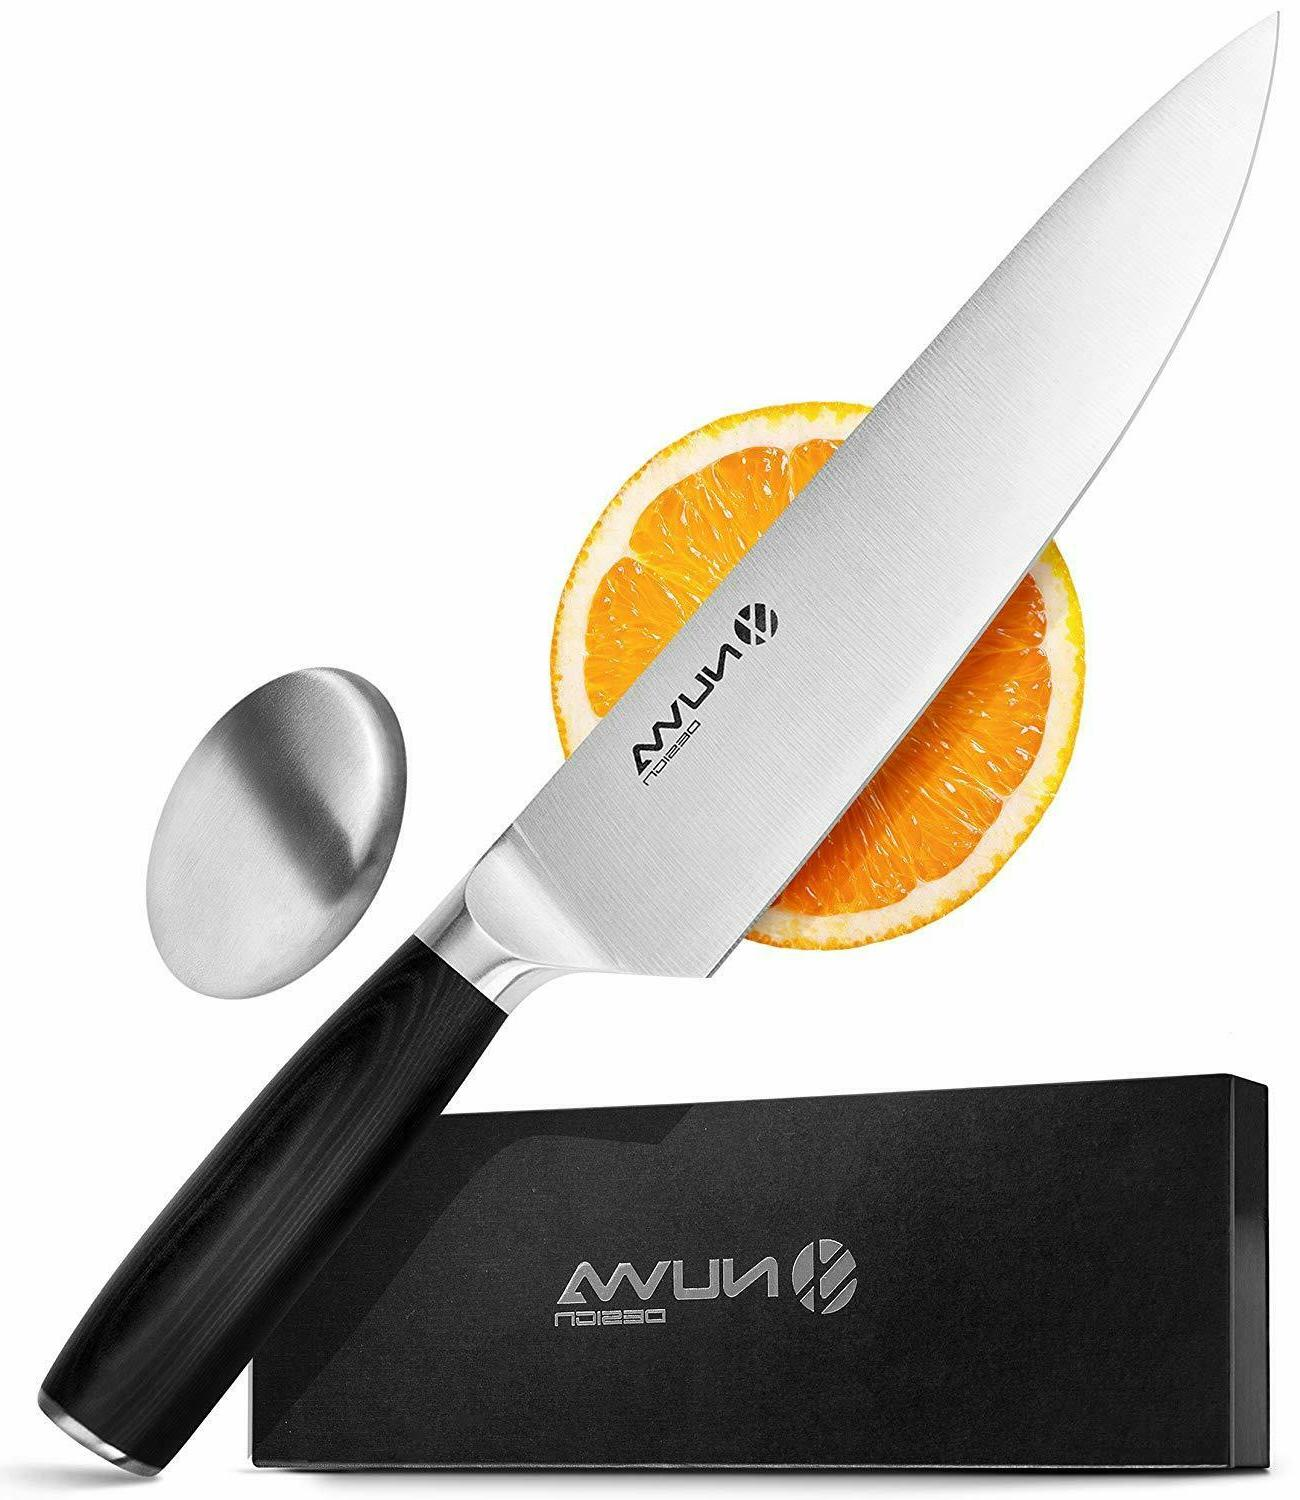 8 inch chef knife high carbon stainless